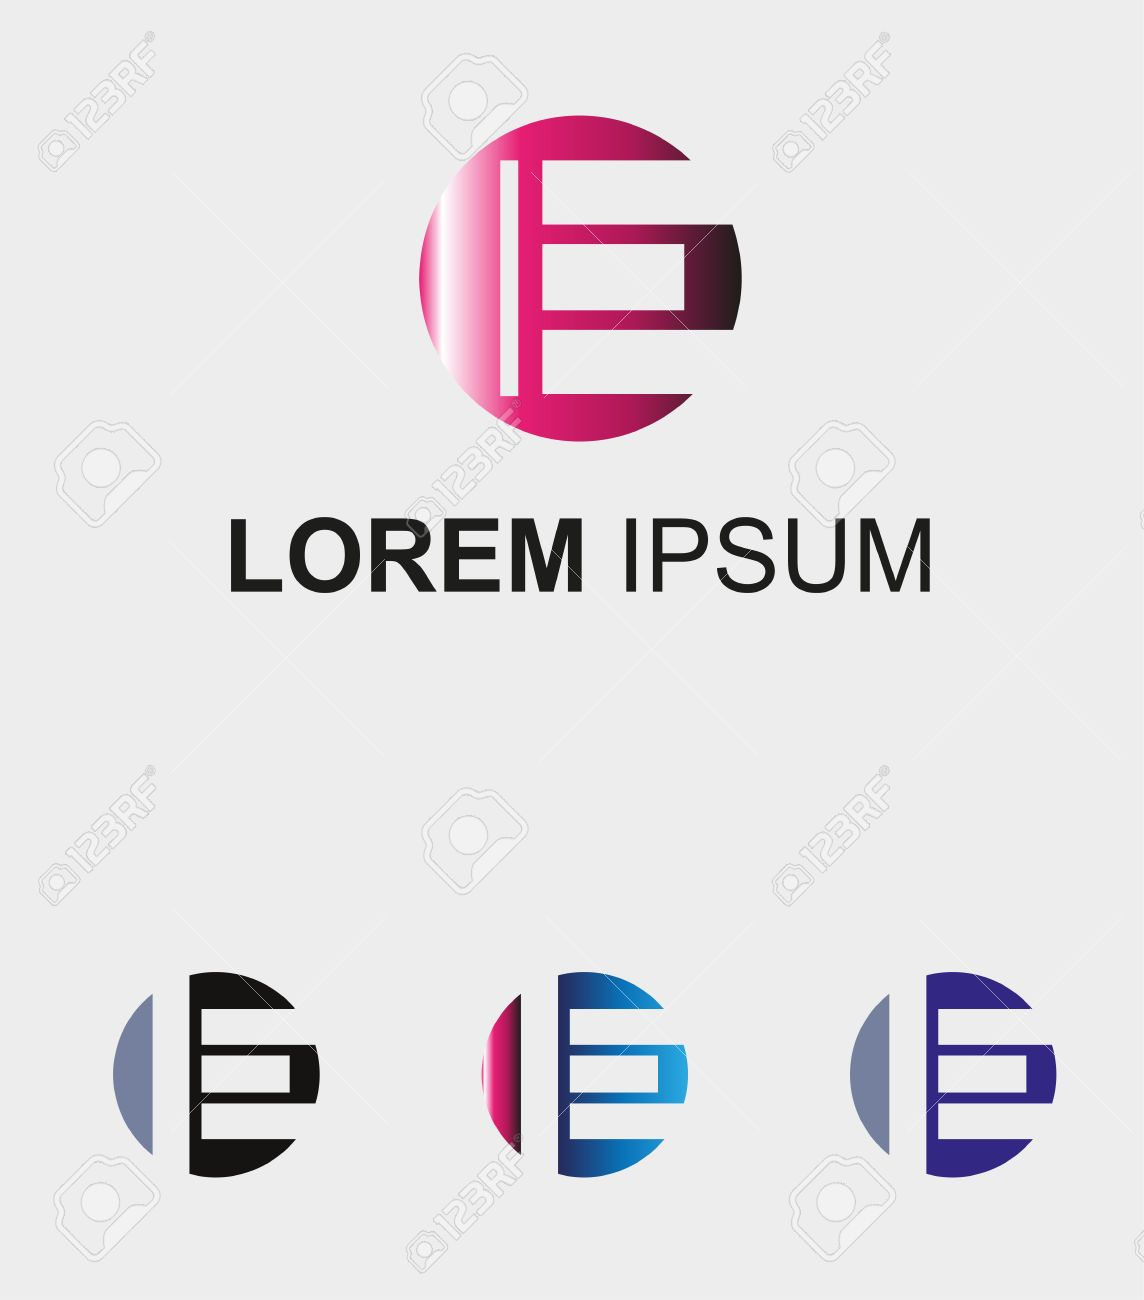 circle icon with letter e logo royalty free cliparts, vectors, and